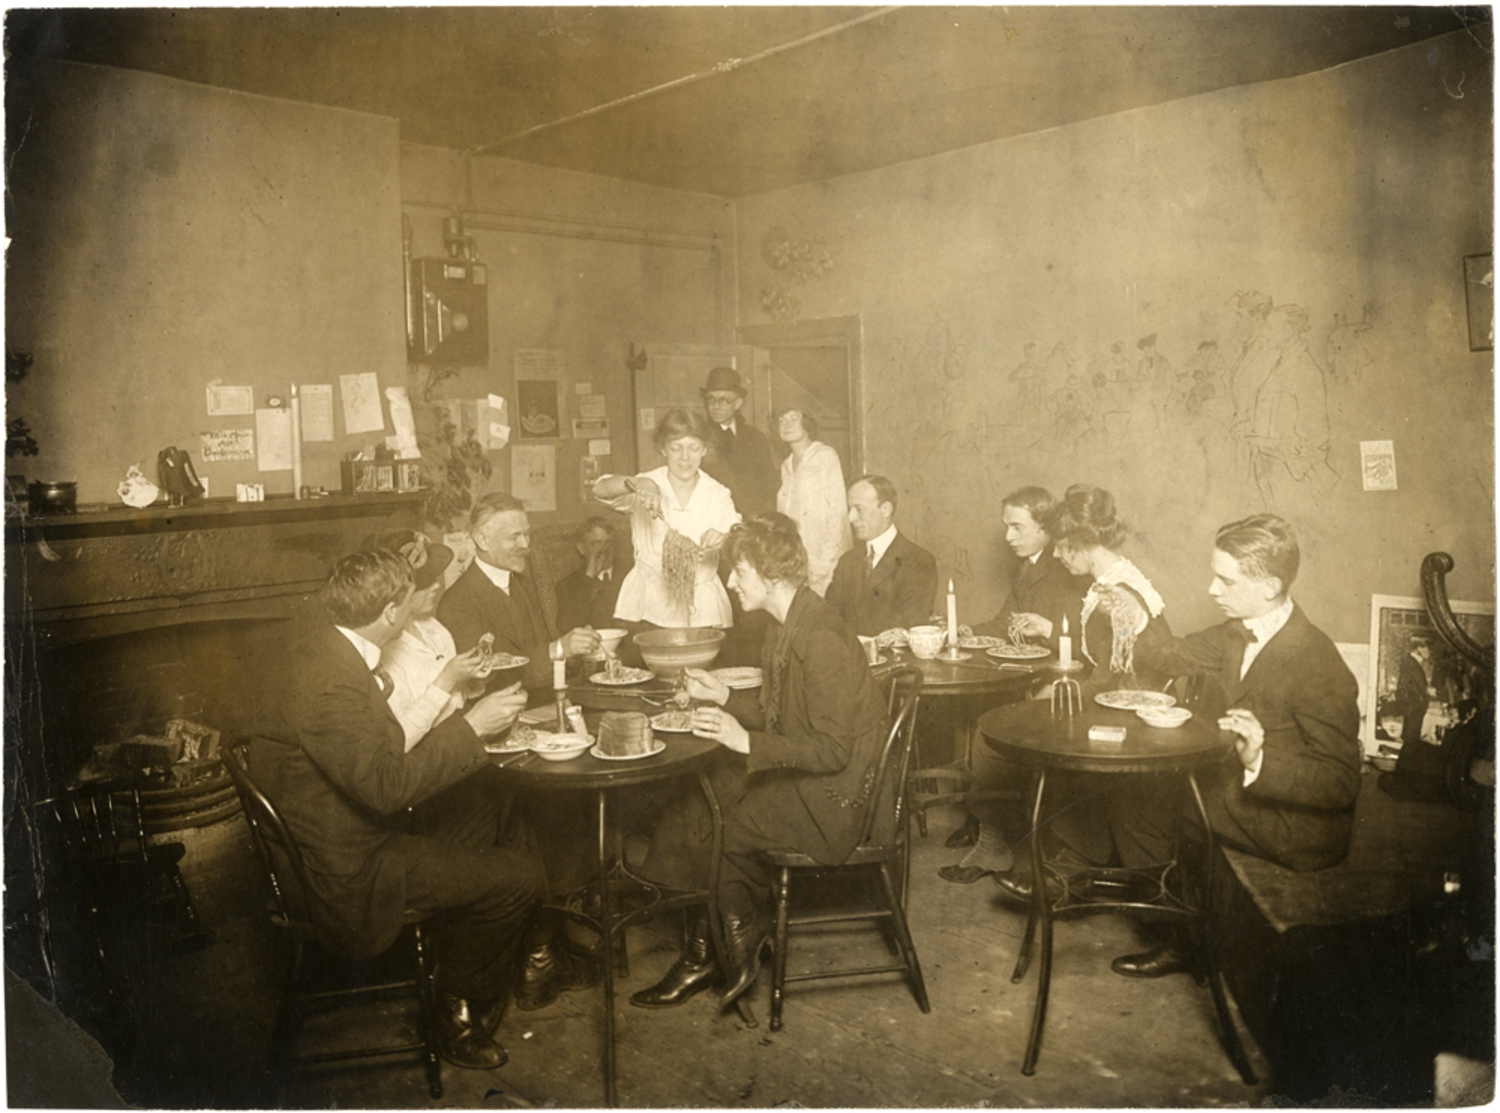 Spaghetti dinner in Grace Godwin's garret, 58 Washington Square South, 1917-1918; photograph by Jessie Tarbox Beals.